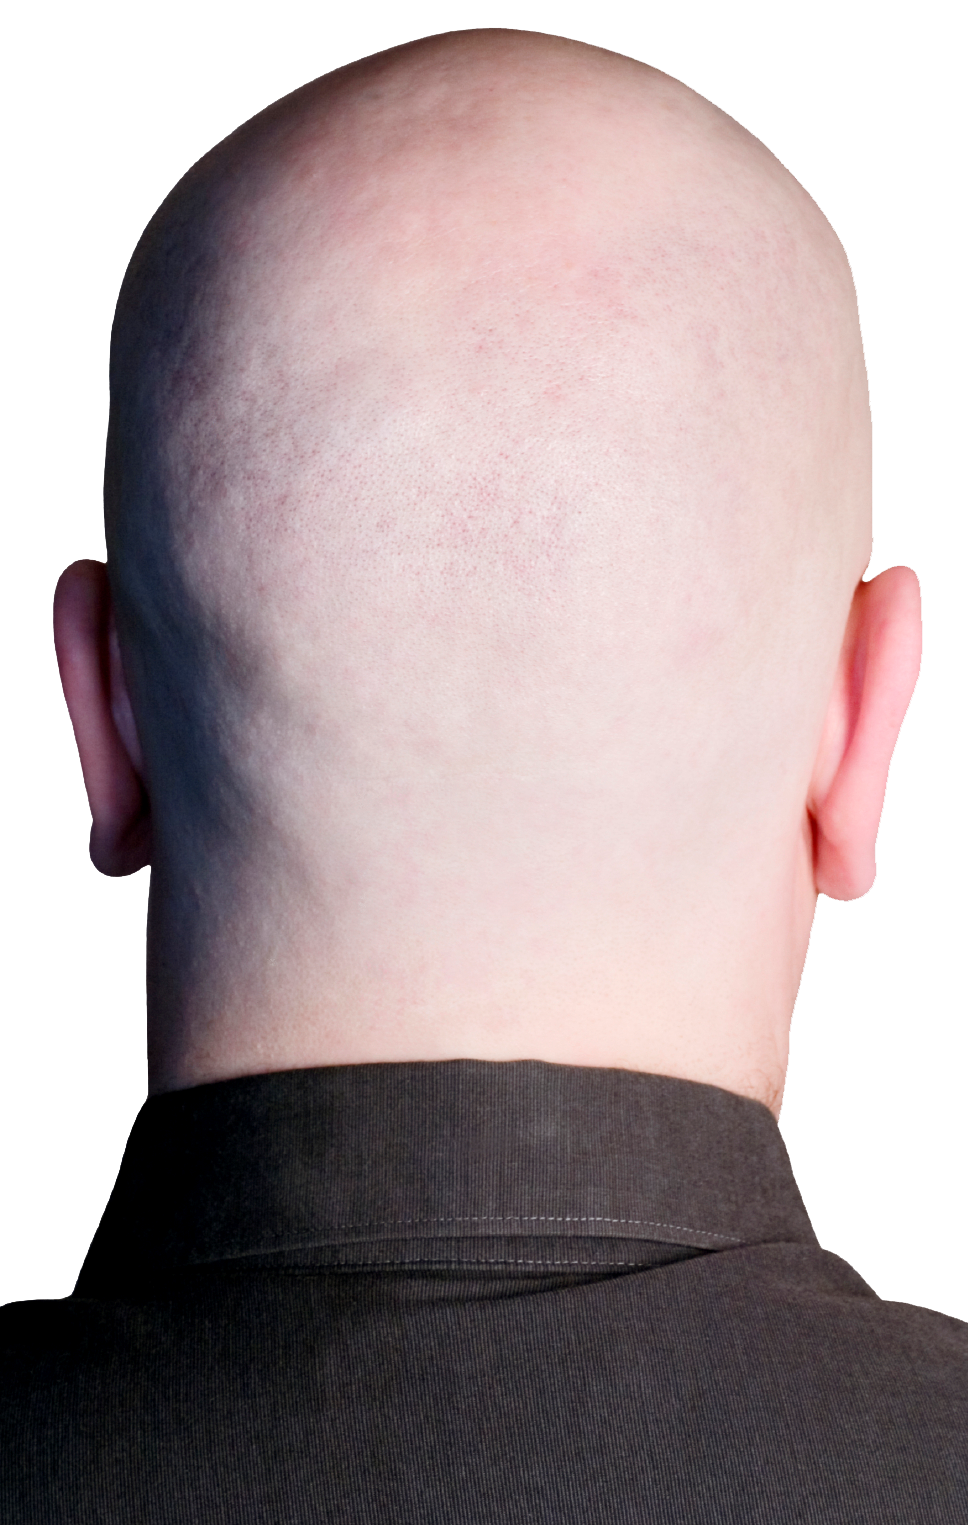 Back of head png. This is your brain